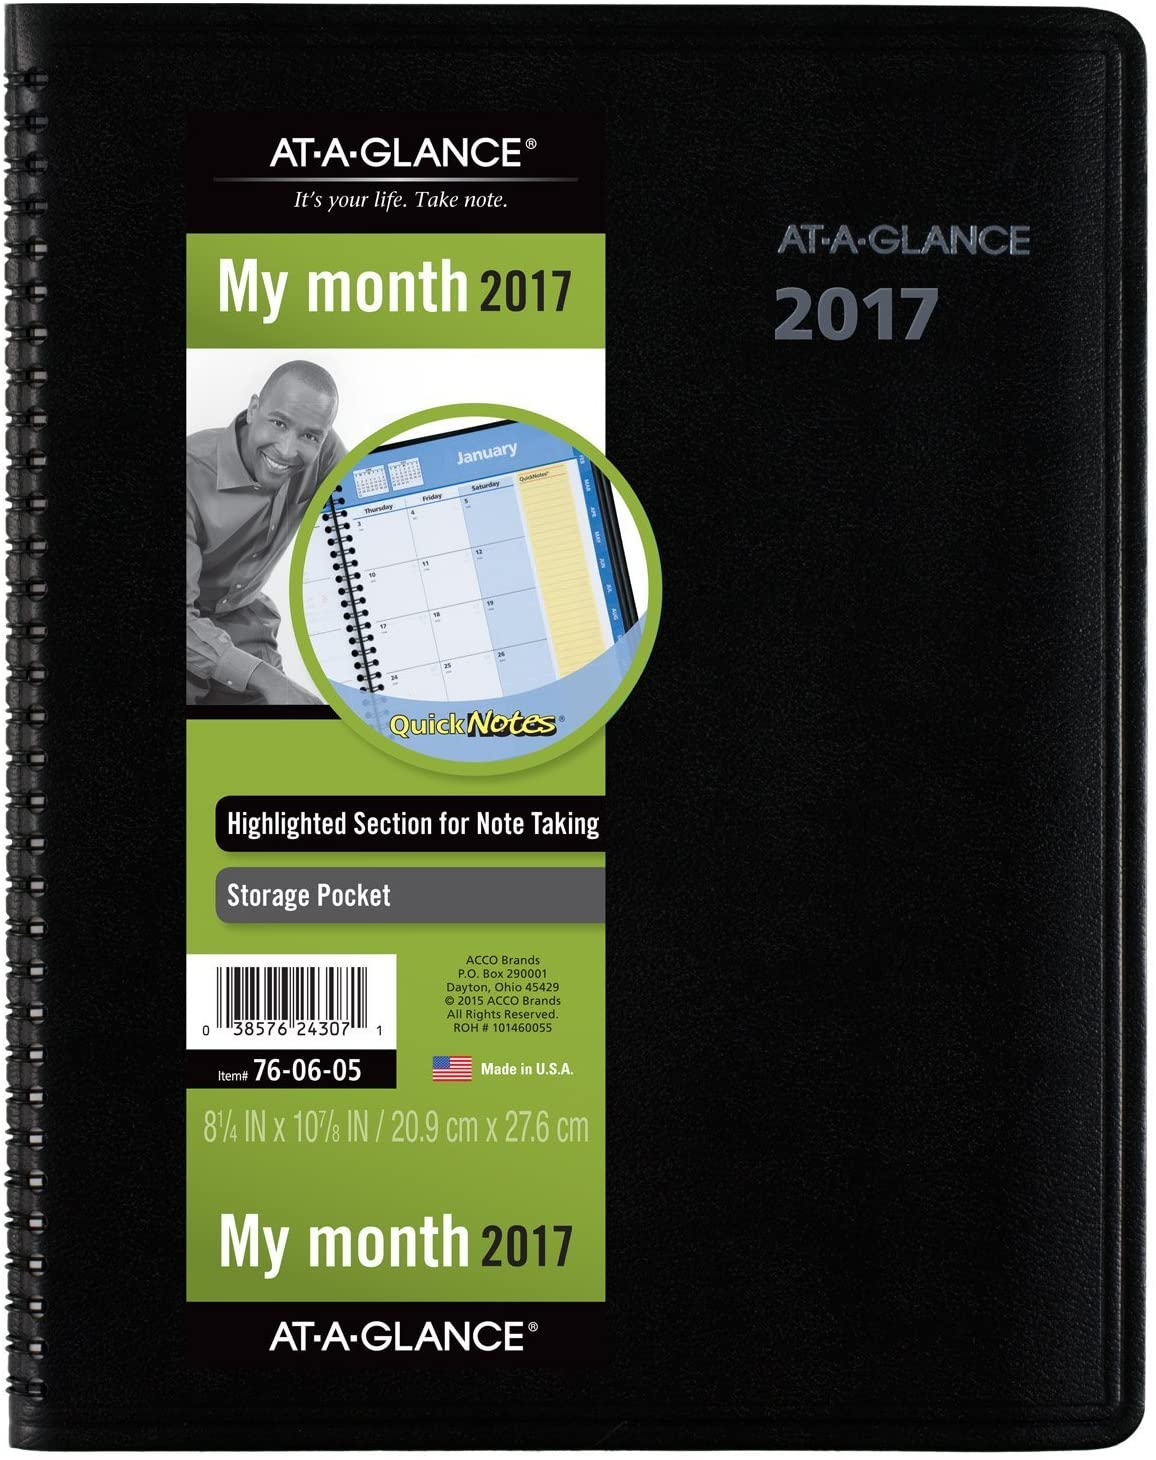 AT-A-GLANCE Monthly Planner / Appointment Book 2017, QuickNotes, 8-1/4 x 10-7/8